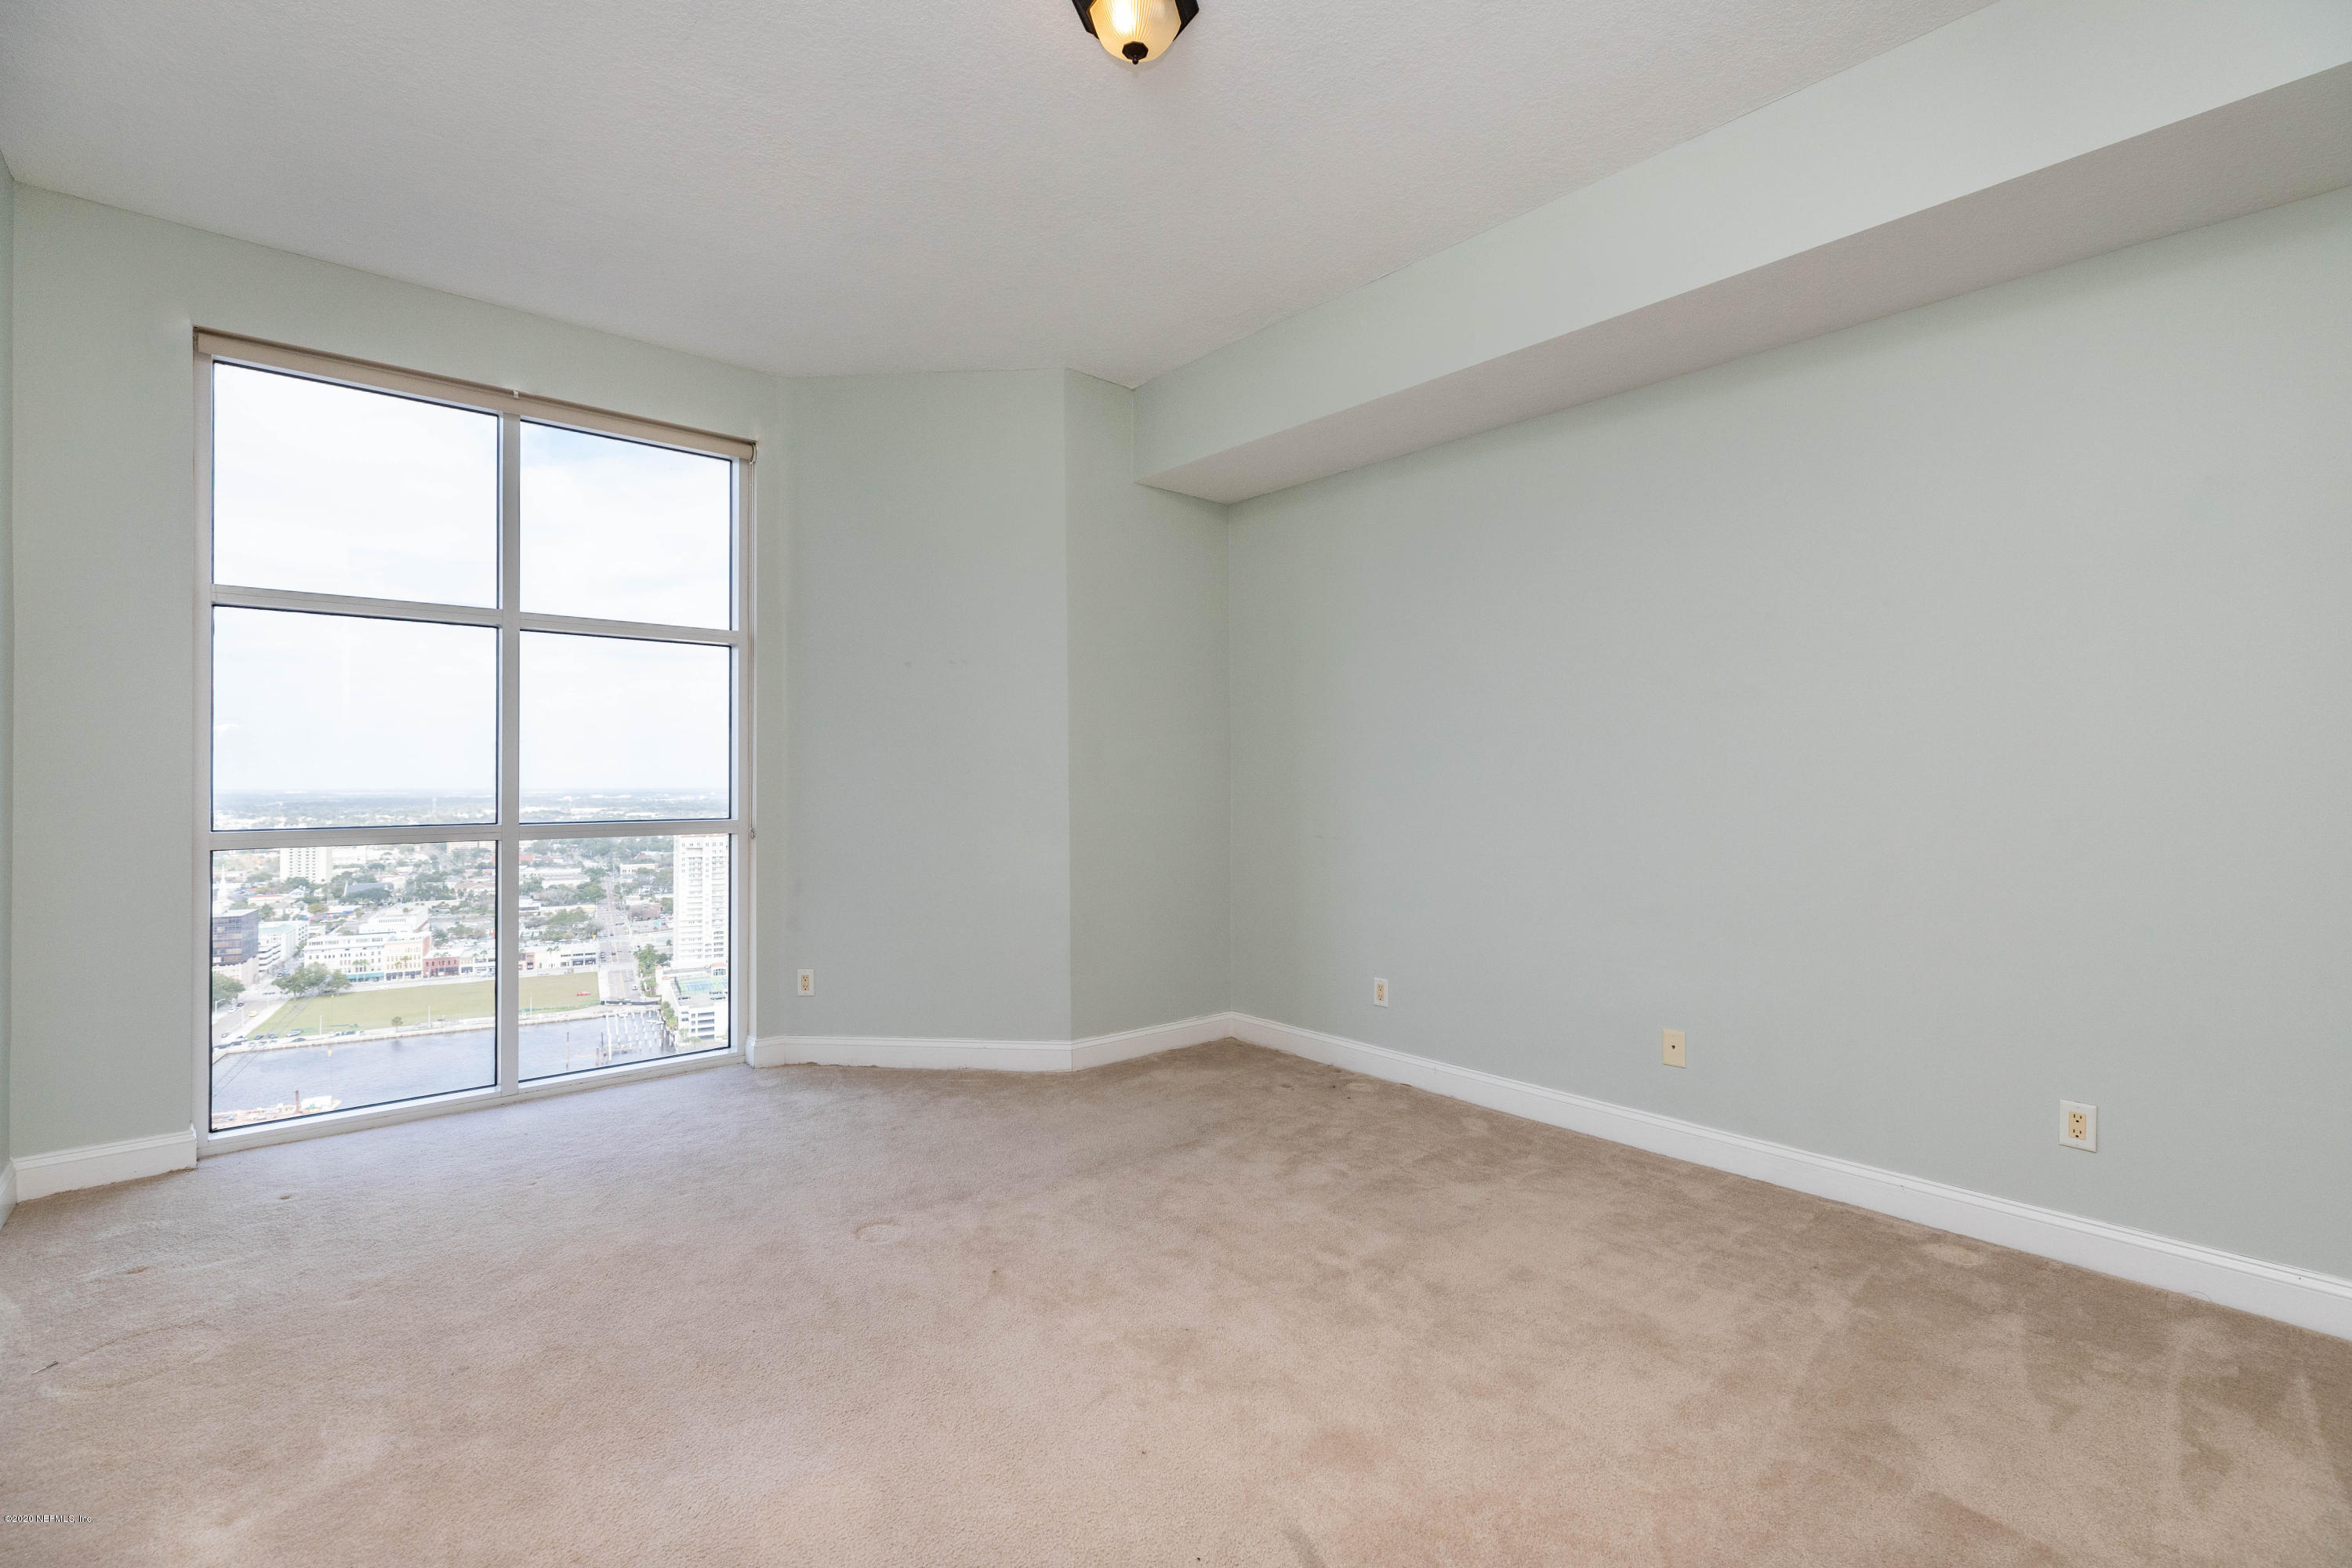 1431 RIVERPLACE, JACKSONVILLE, FLORIDA 32207, 3 Bedrooms Bedrooms, ,3 BathroomsBathrooms,Residential,For sale,RIVERPLACE,1033091